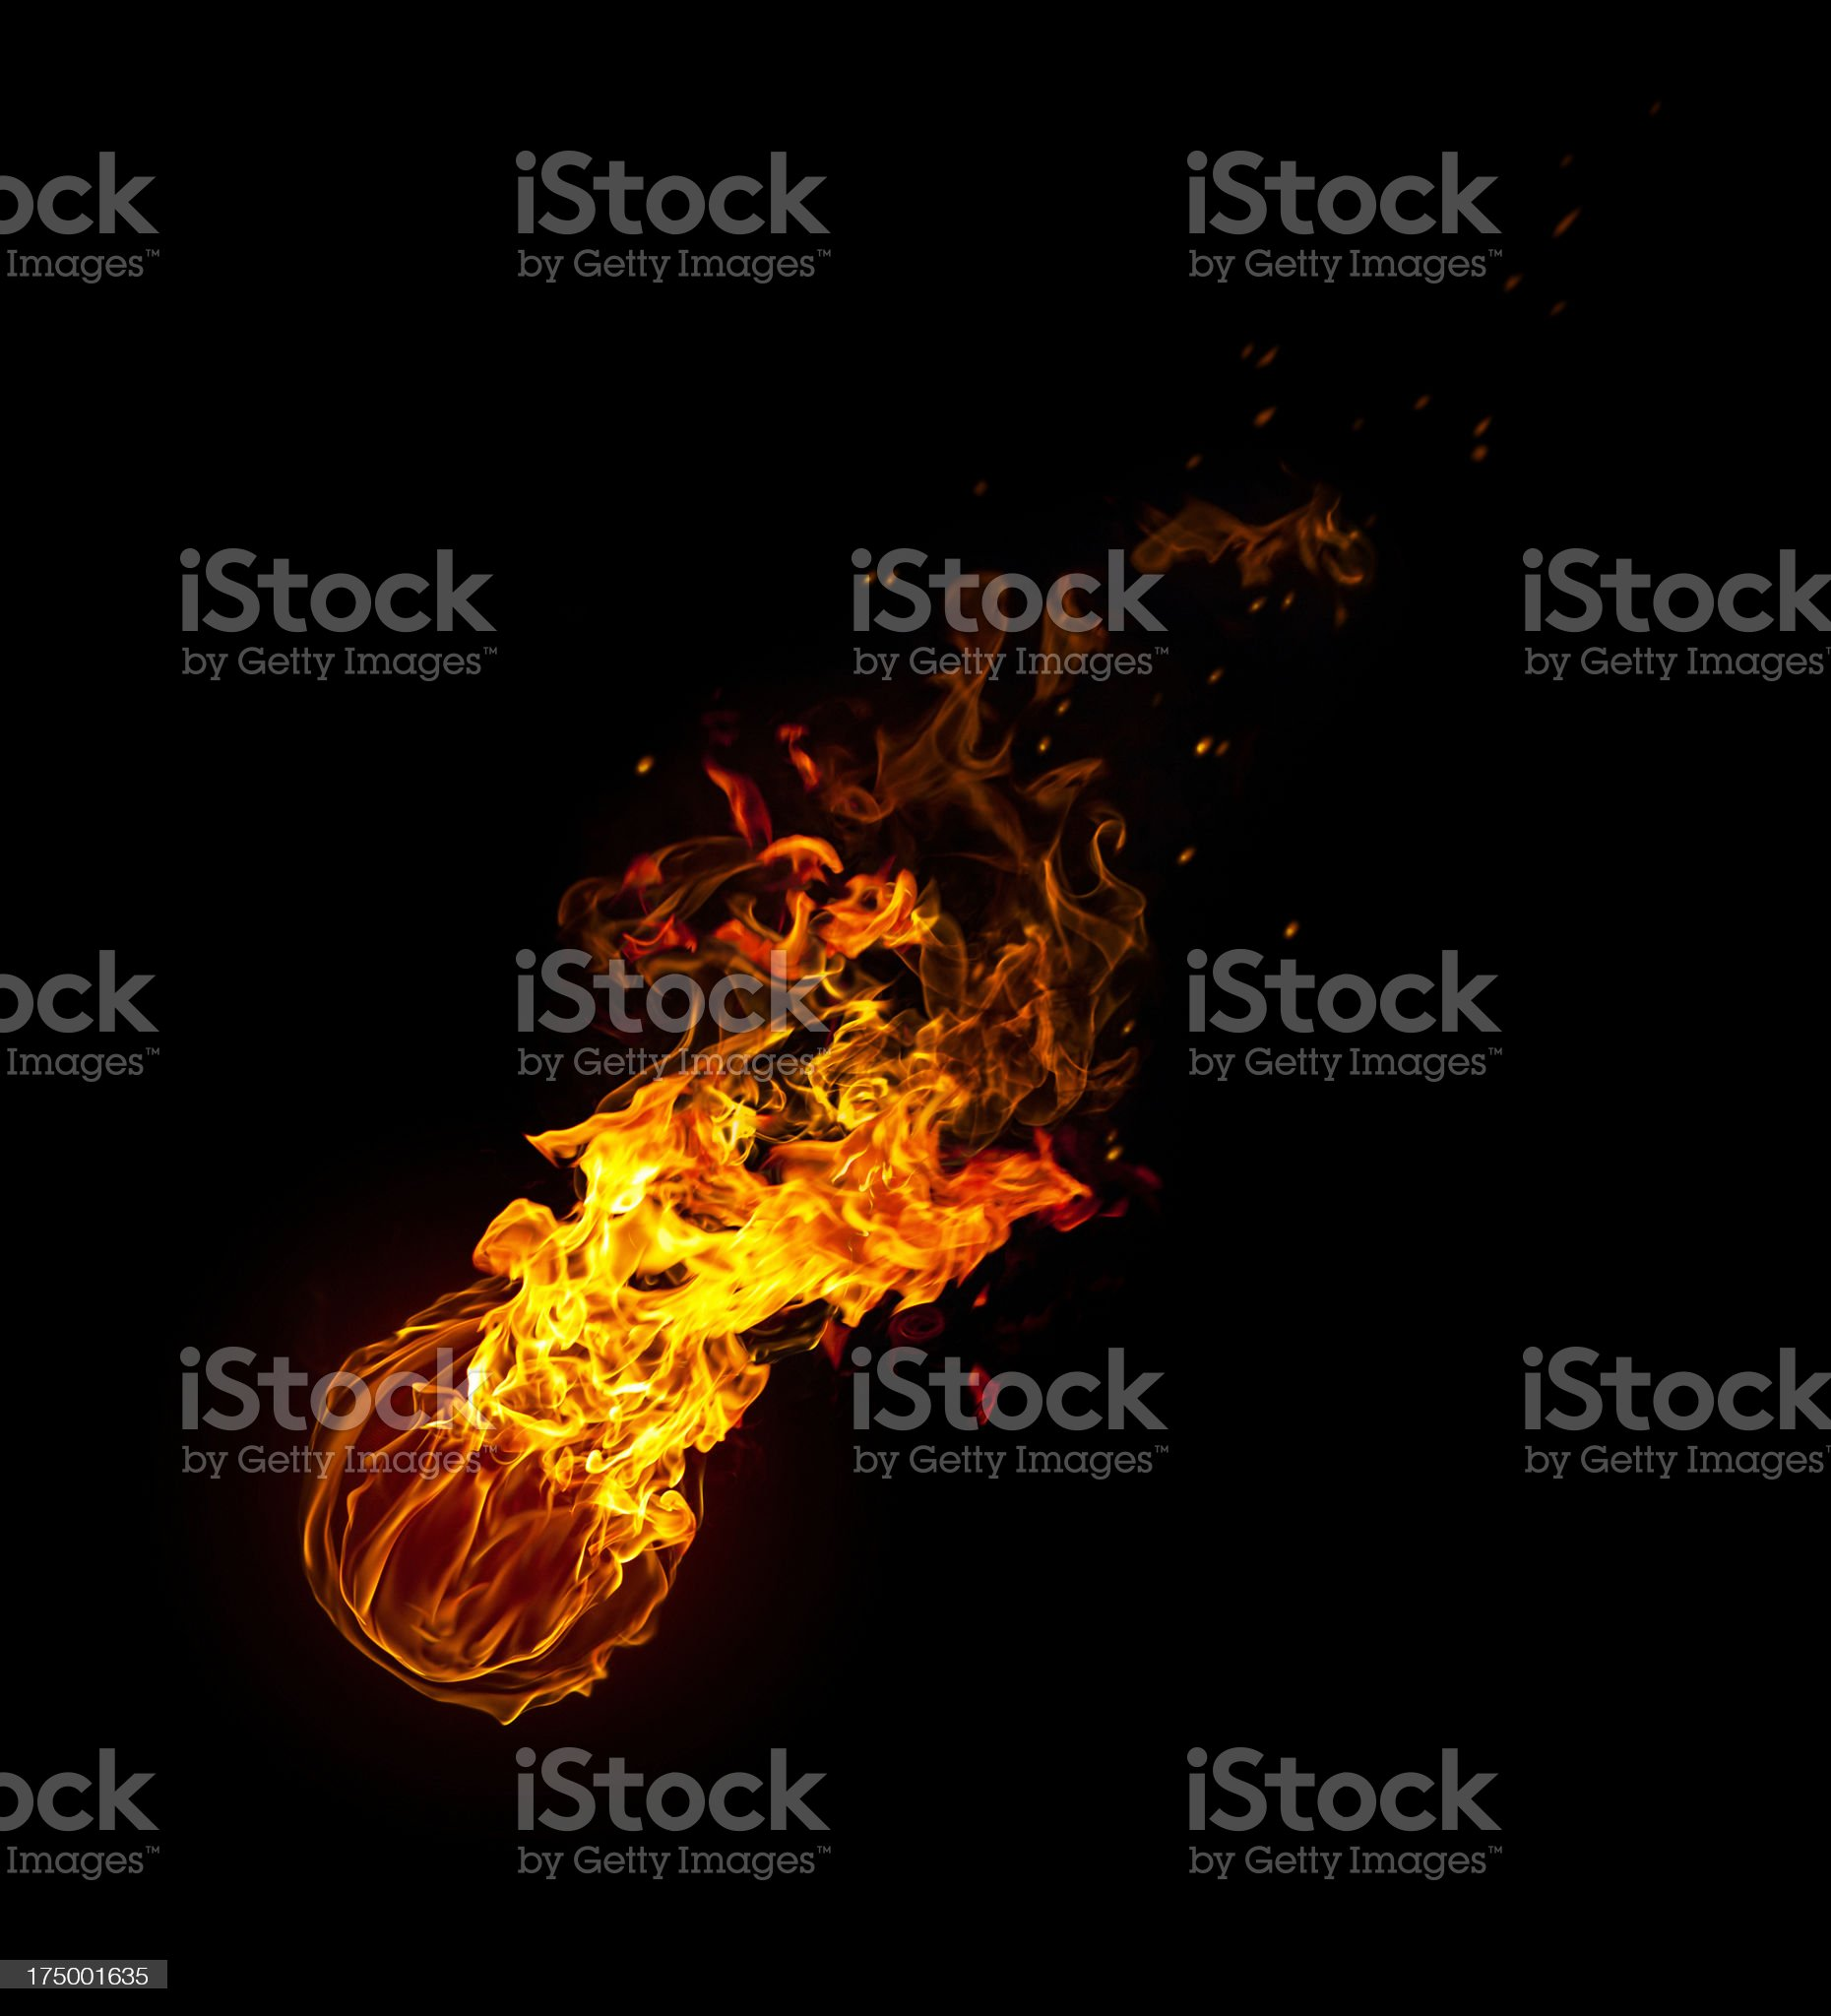 Meteorite fireball with tale of flames royalty-free stock photo